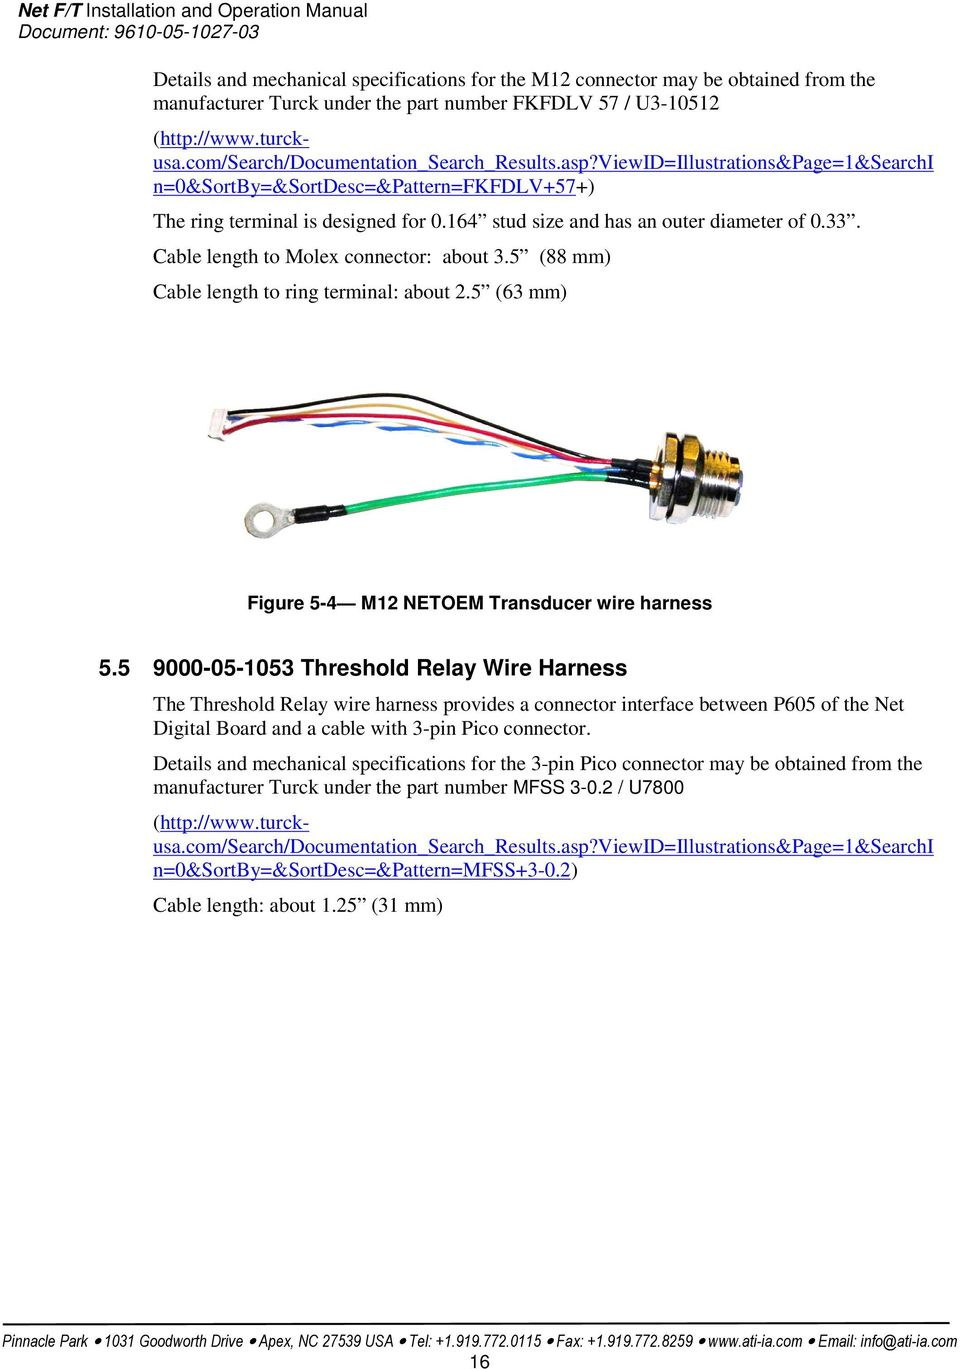 9105 Netoem And Netaoem Net F T Oem Technical Data Wiring Harness M12 164 Stud Size Has An Outer Diameter Of 033 Cable Length To Molex Connector